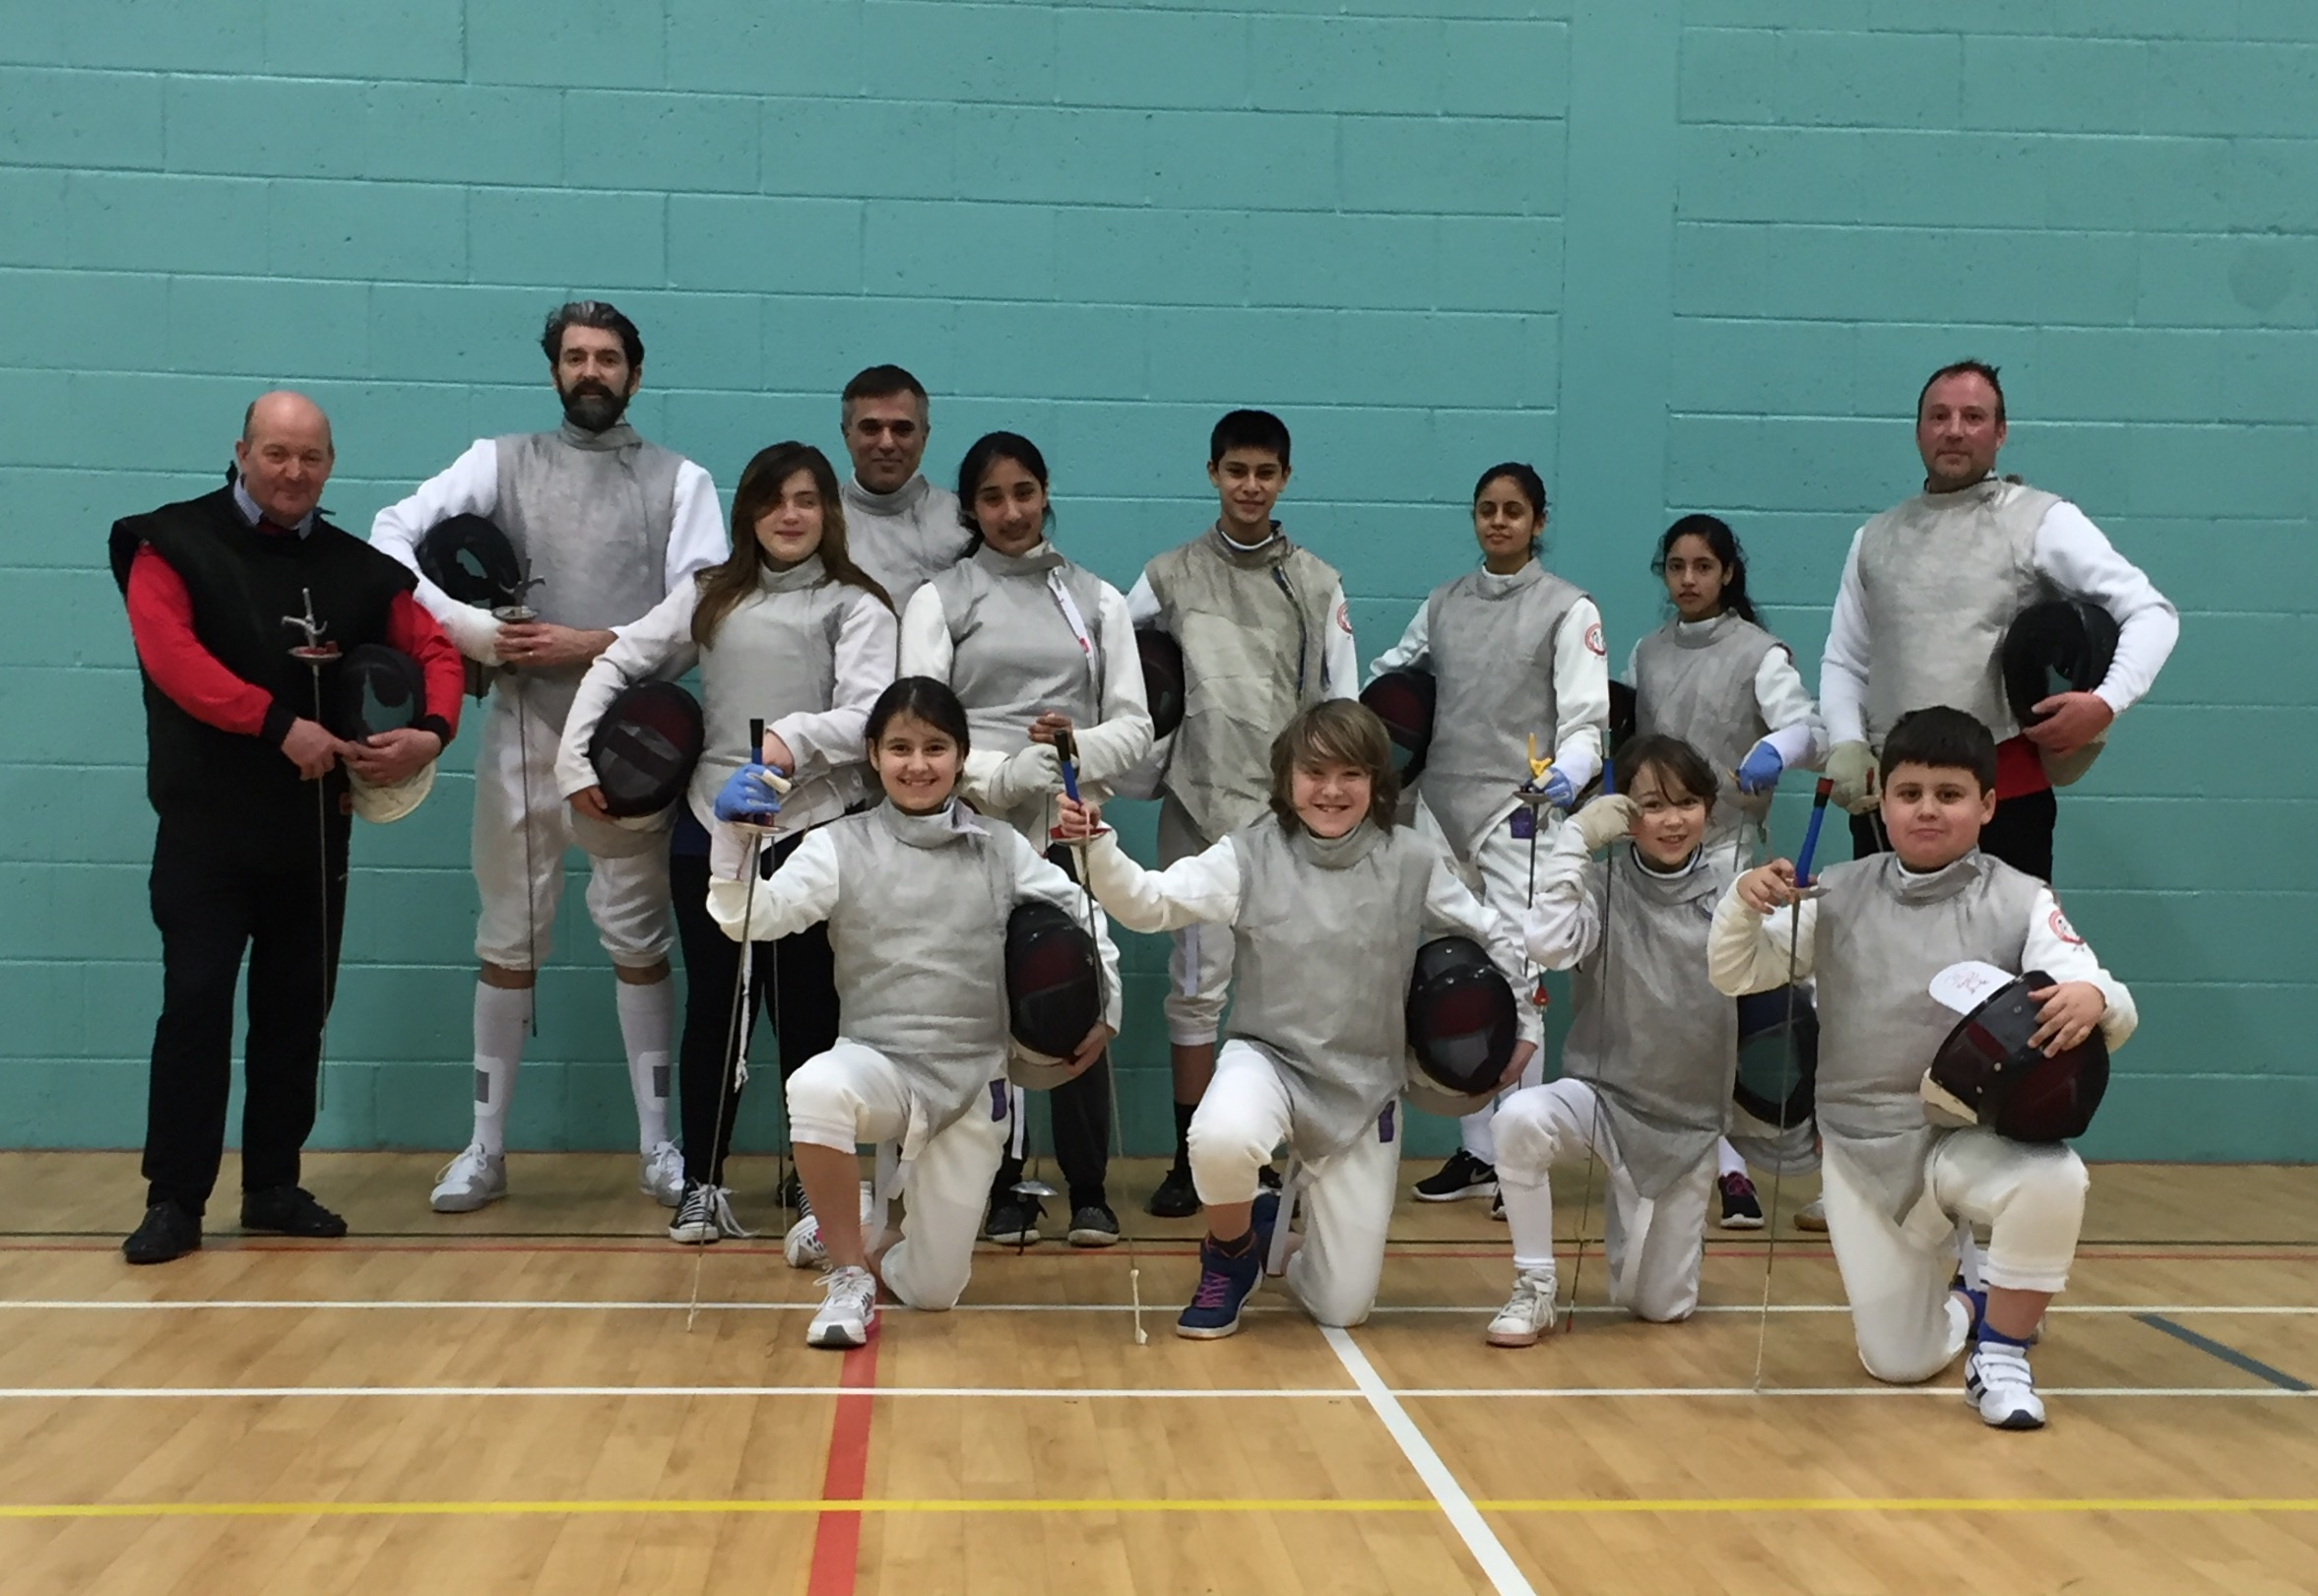 Salle Angelo Fencing Club Foil Epee And Sabre Fencing In